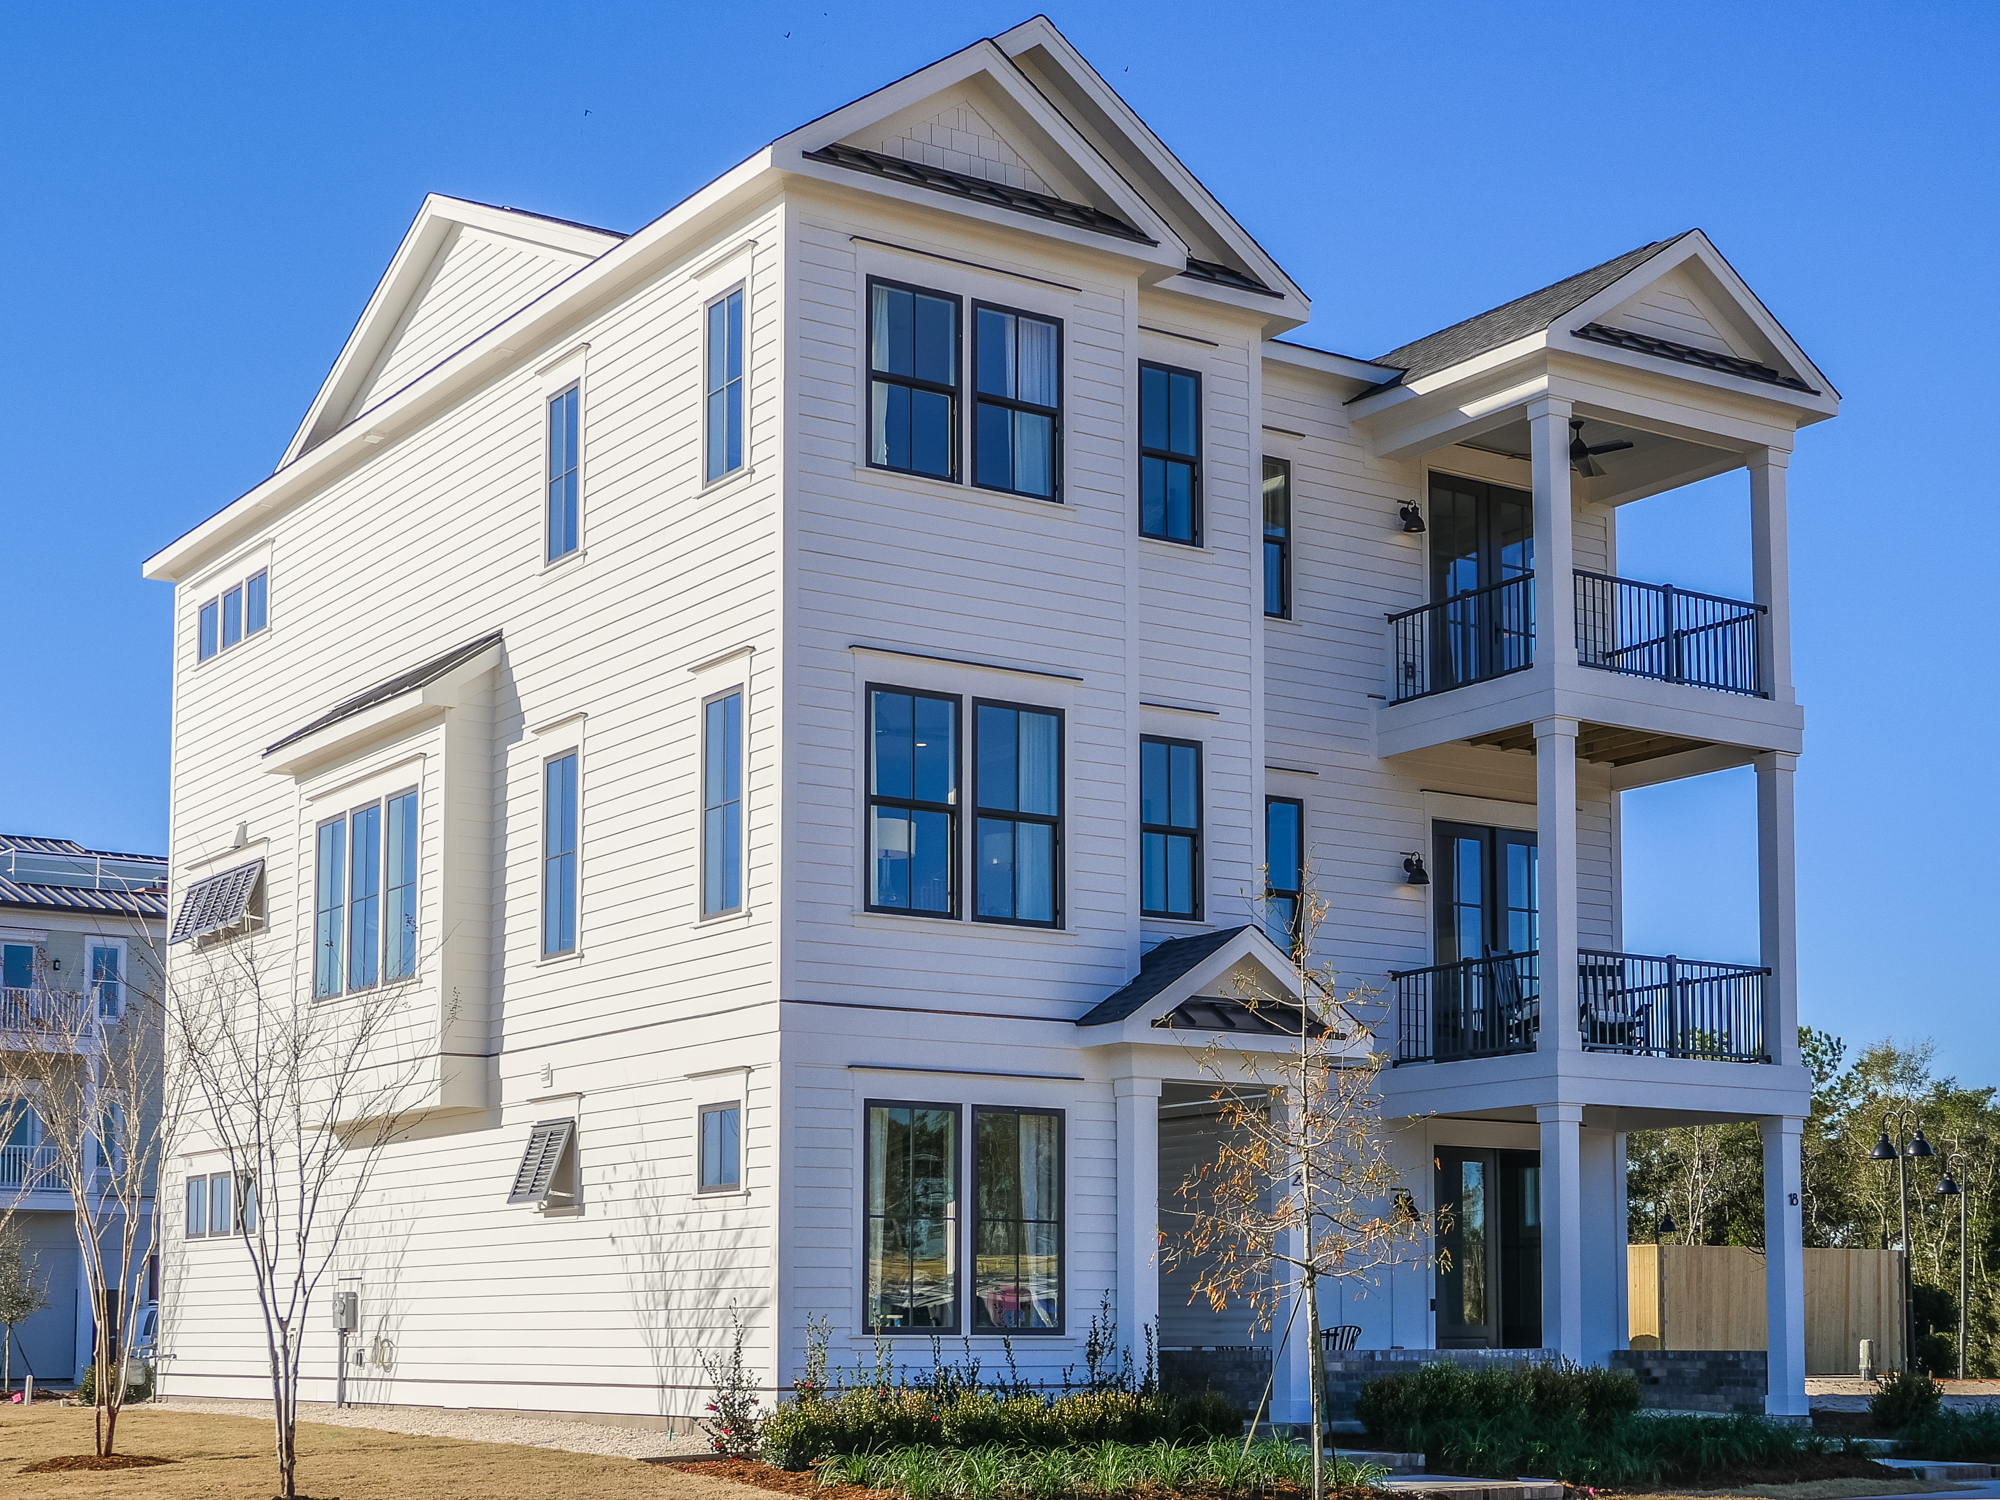 Townhouse for Sale at Elegant Townhouse with Sophisticated Architecture 20 Hobie Run Wilmington, North Carolina, 28412 United States